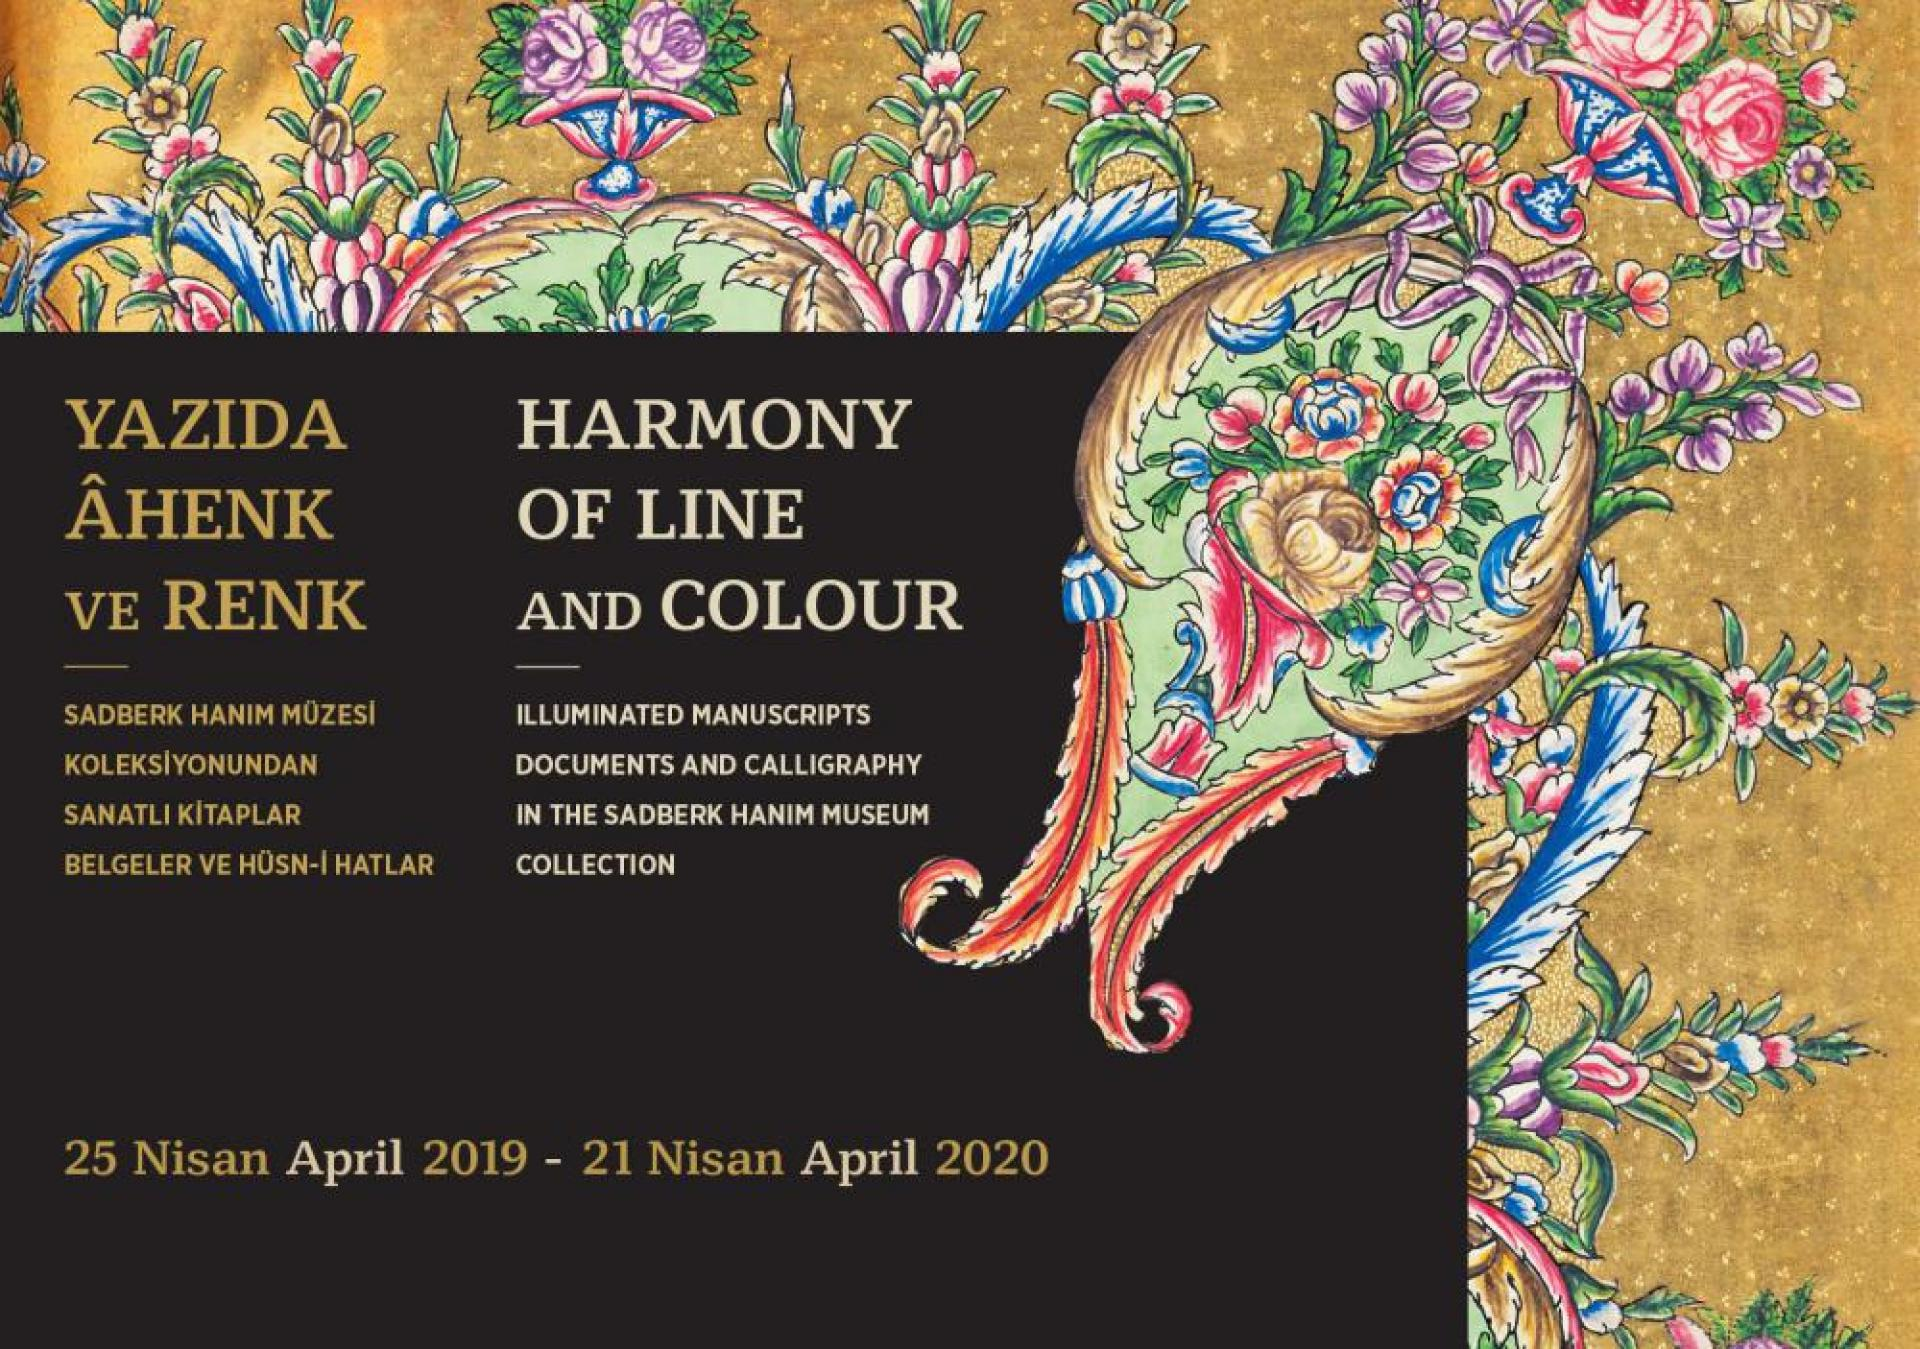 HARMONY AND COLOUR IN CALLIGRAPHY: Illuminated Manuscripts, Documents And Calligraphy In The Sadberk Hanim Museum Collection - EXHIBITIONS - Sadberk Hanım Museum